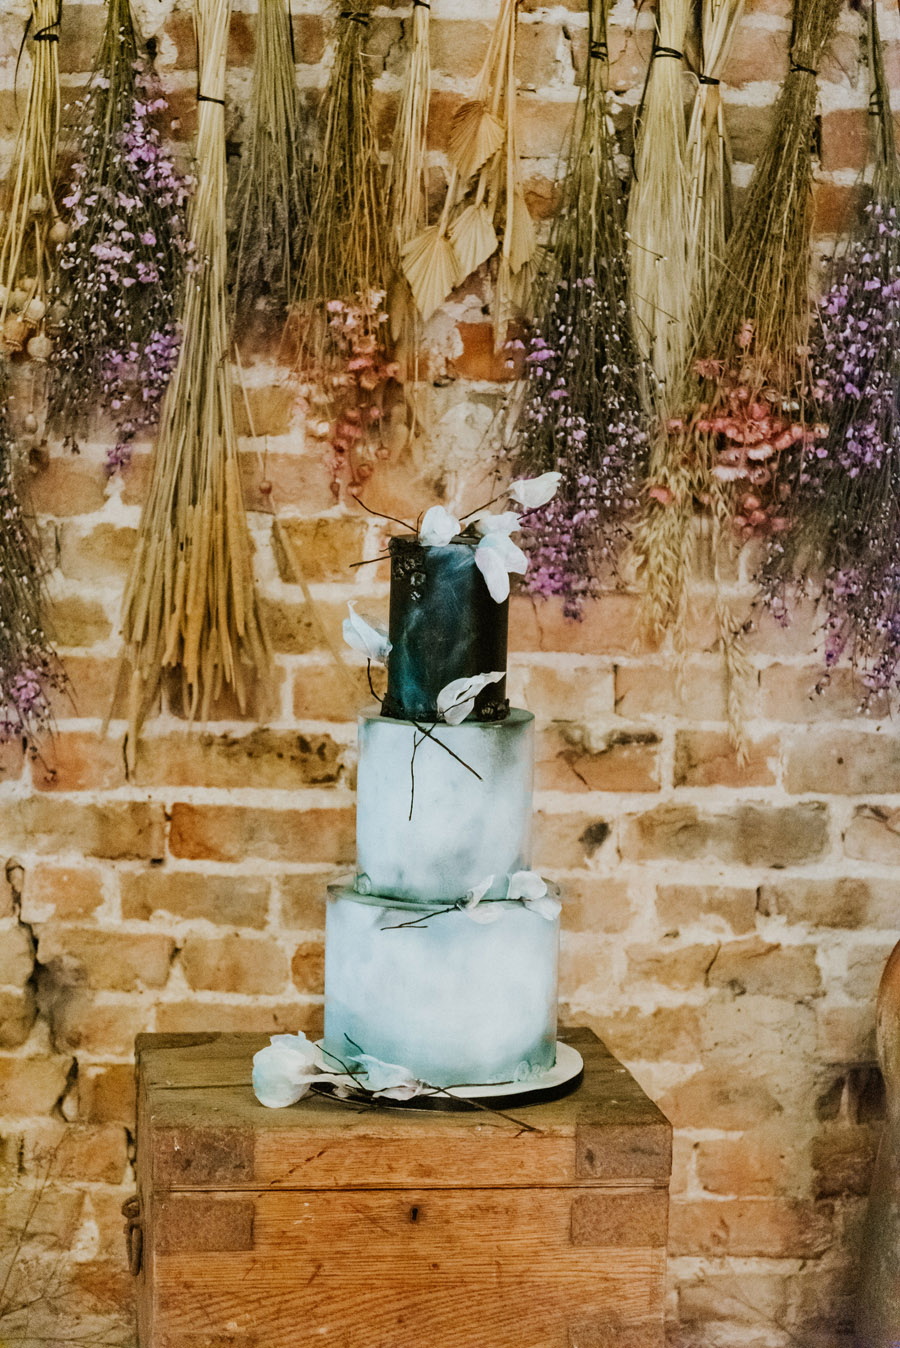 Midelney Manor – Winter pastel romance with a hint of gothic, image credit Hannah Barnes Photography (11)